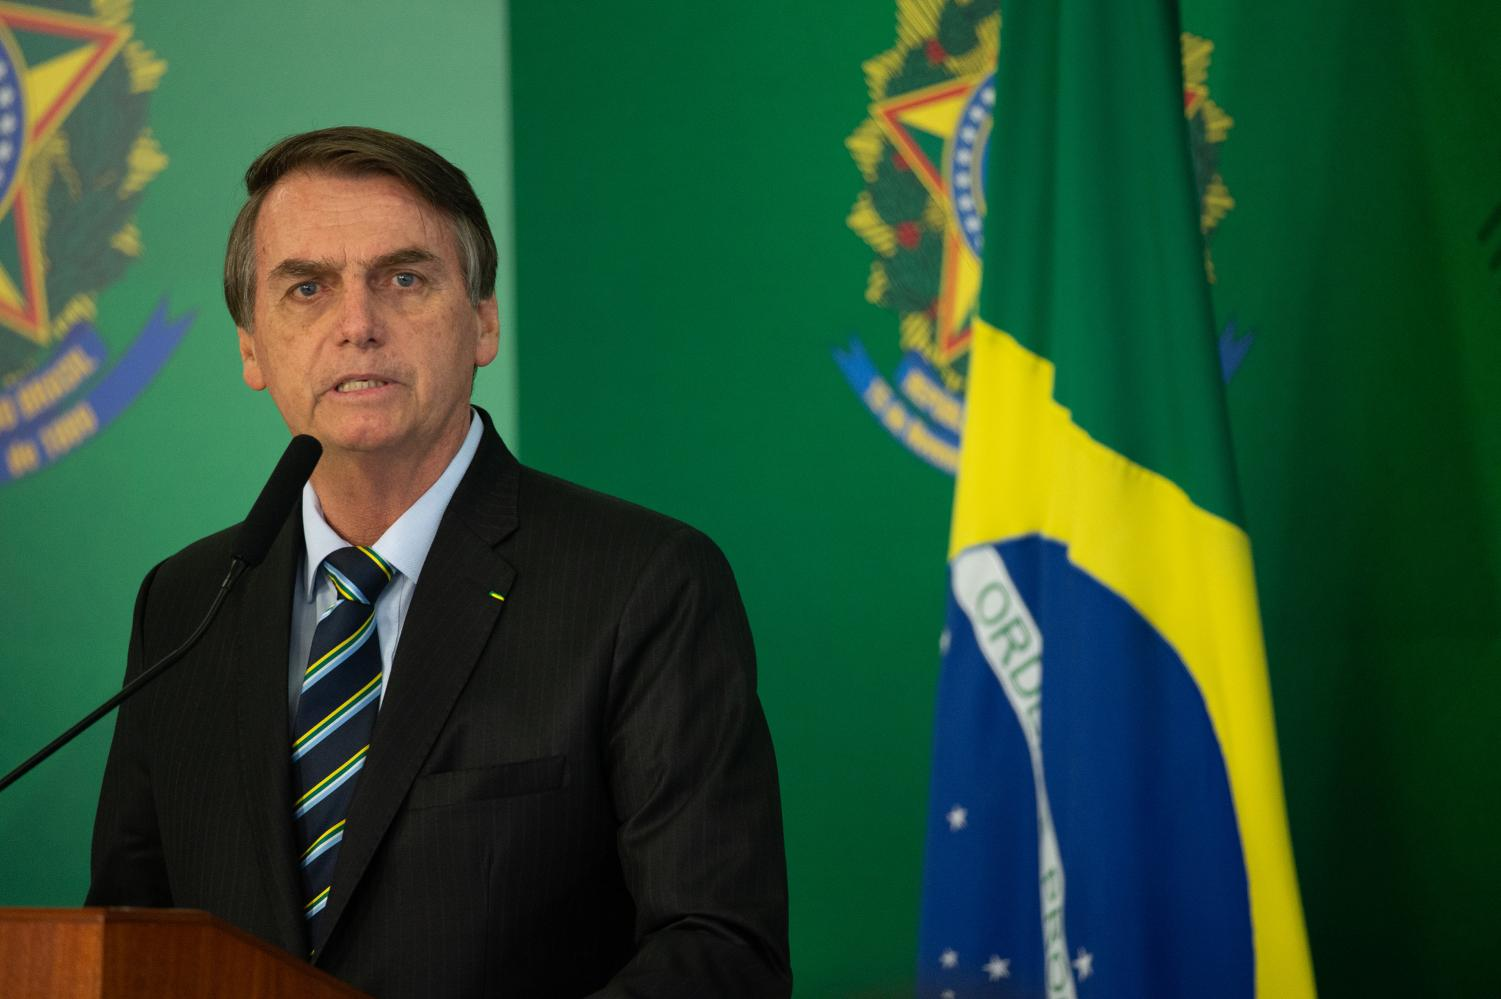 Far-right candidate Jair Bolsonaro was elected to Brazil's presidency in 2018. Northwestern researchers have determined that right-wing groups on WhatsApp contributed to his election.